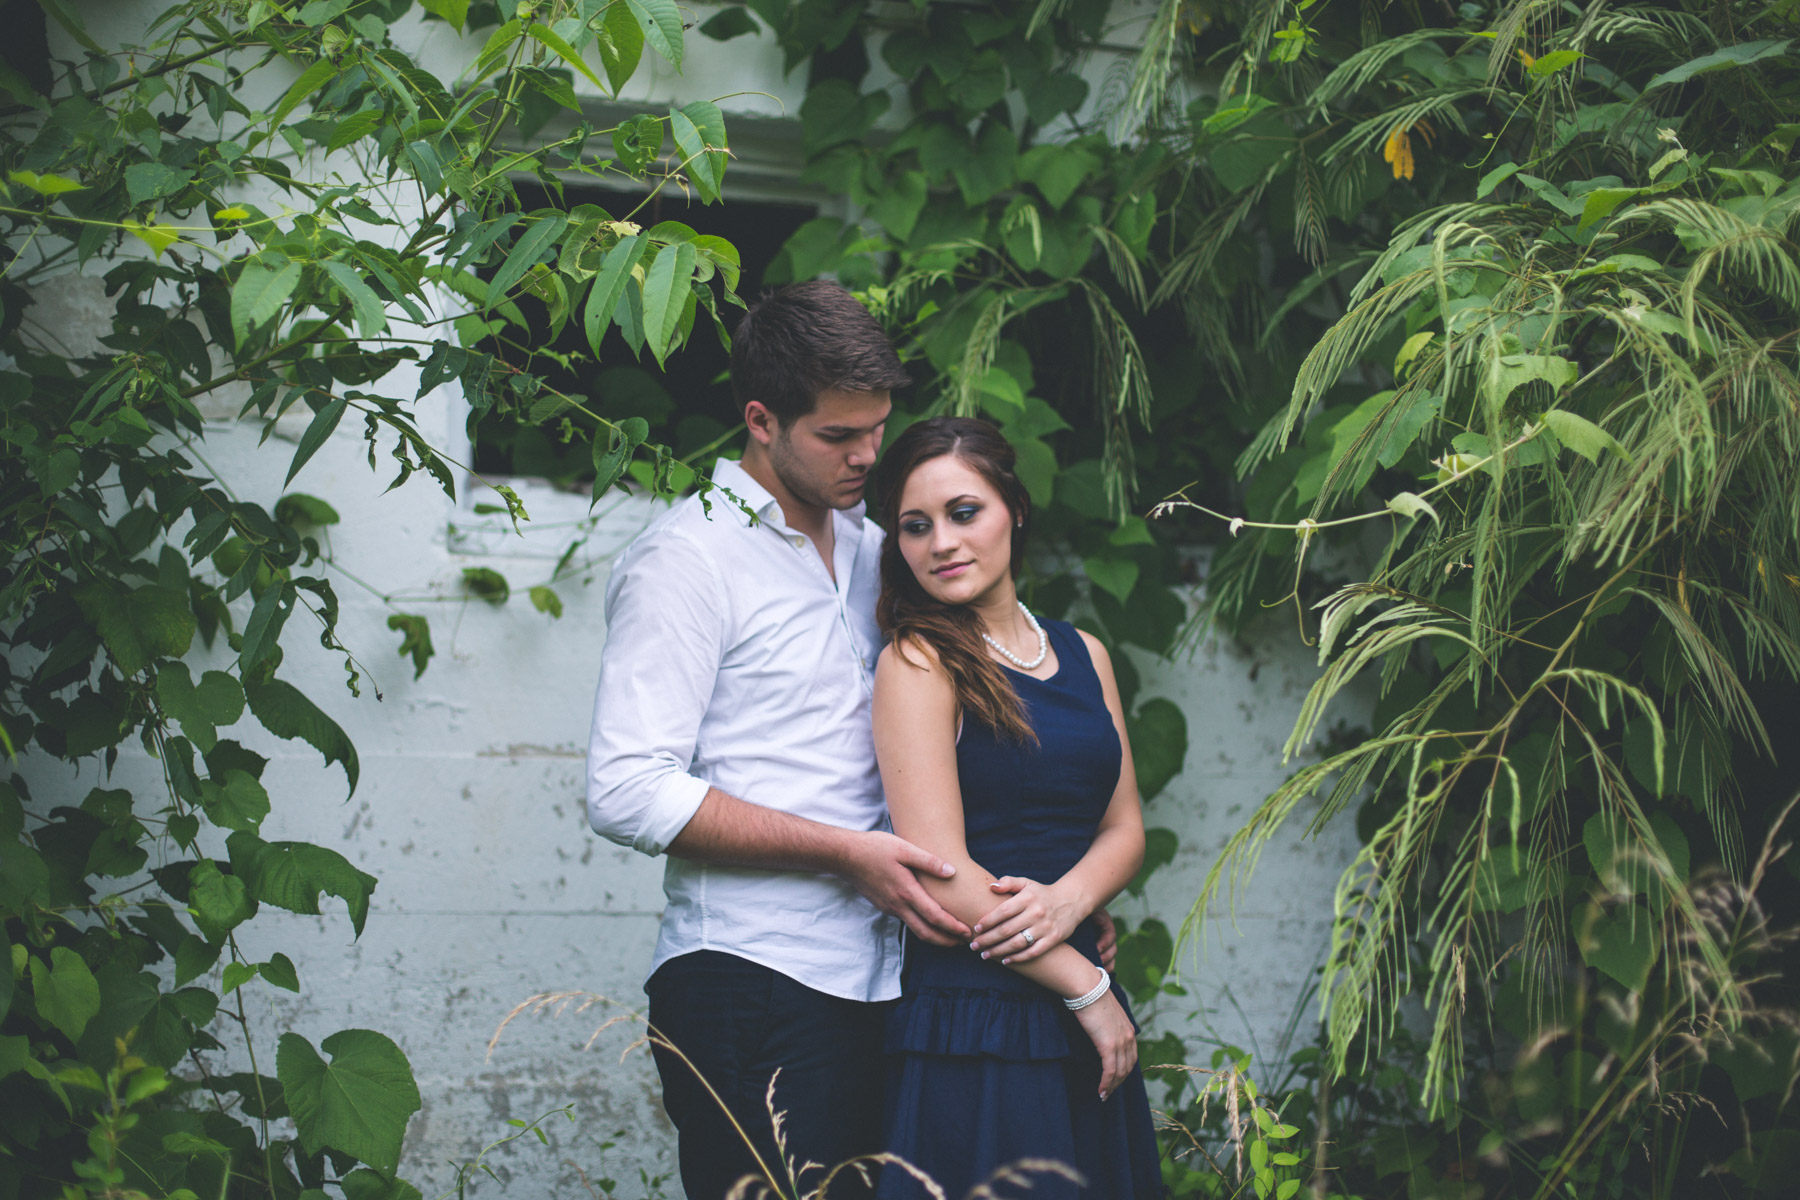 Engagement photography - Share your pre-wedding bliss with a photo.